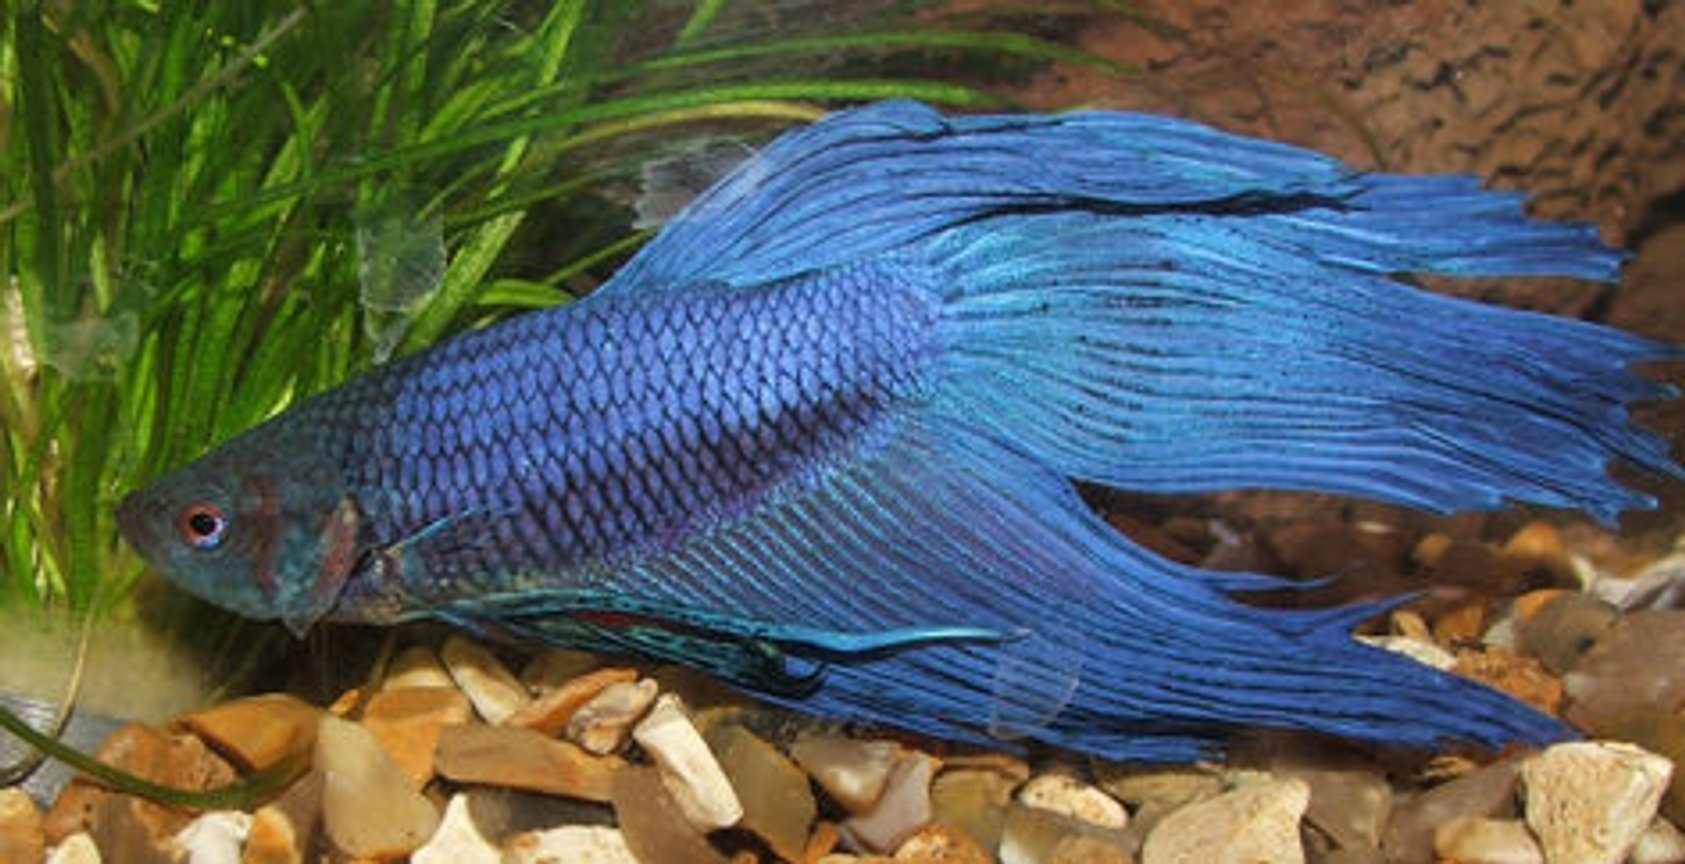 freshwater fish - betta splendens - betta - male stocking in 15 gallons tank - My Siamese fighter, Pirate